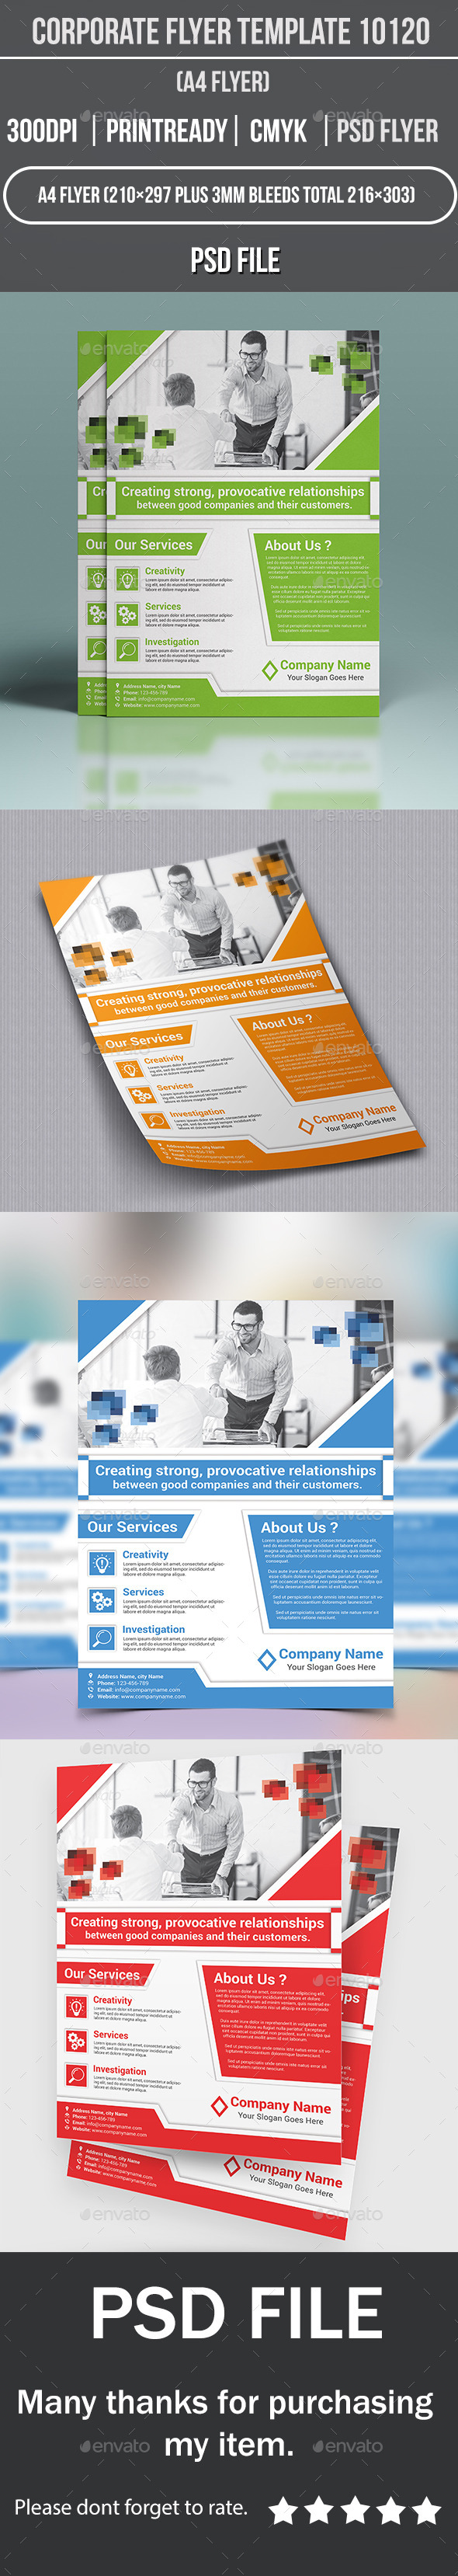 GraphicRiver Corporate Flyer Template 10120 11645124